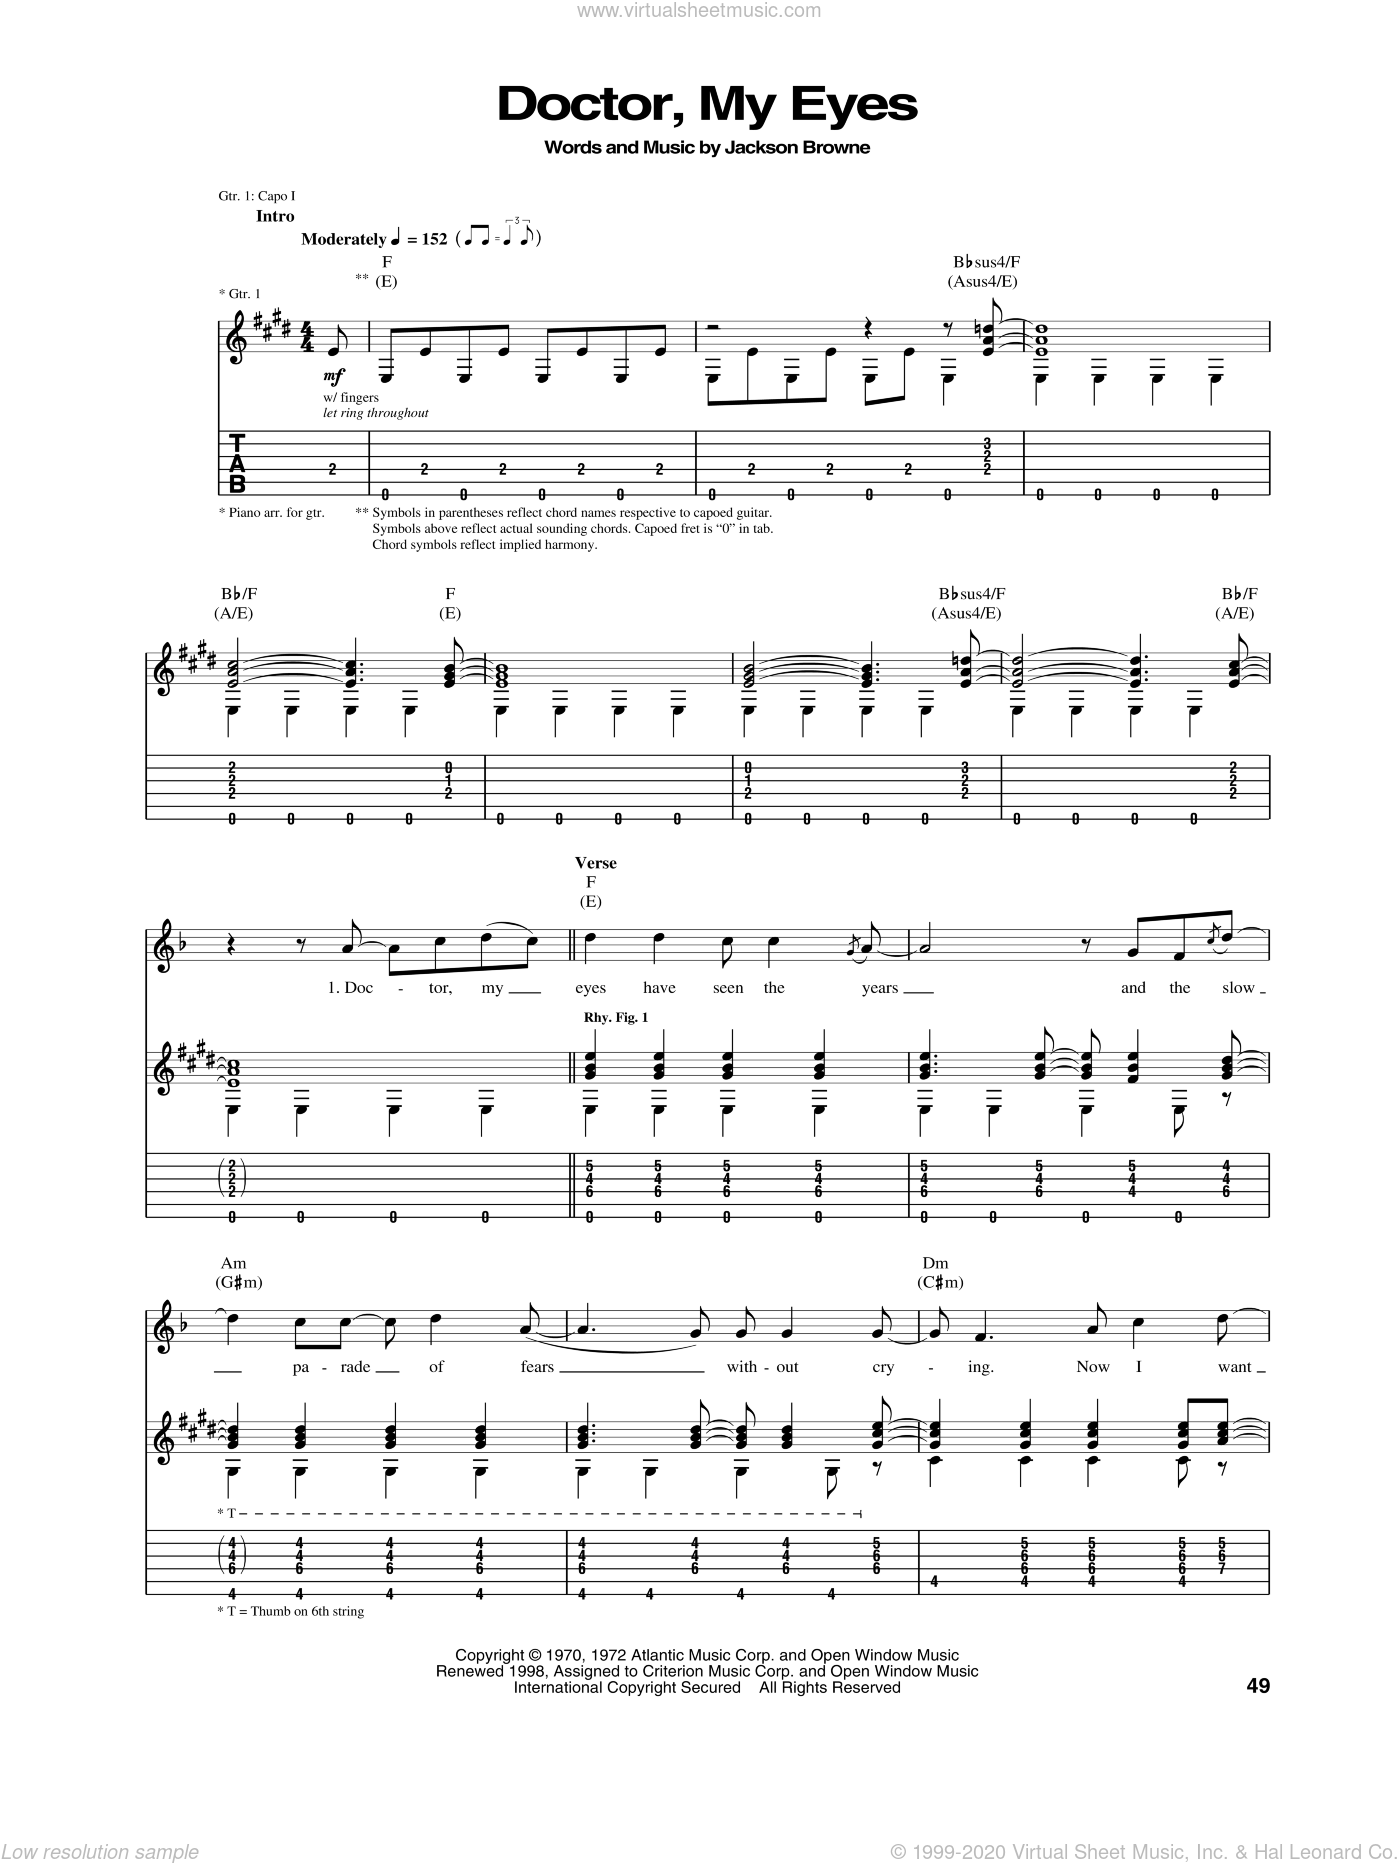 Doctor, My Eyes sheet music for guitar (tablature) by Jackson Browne